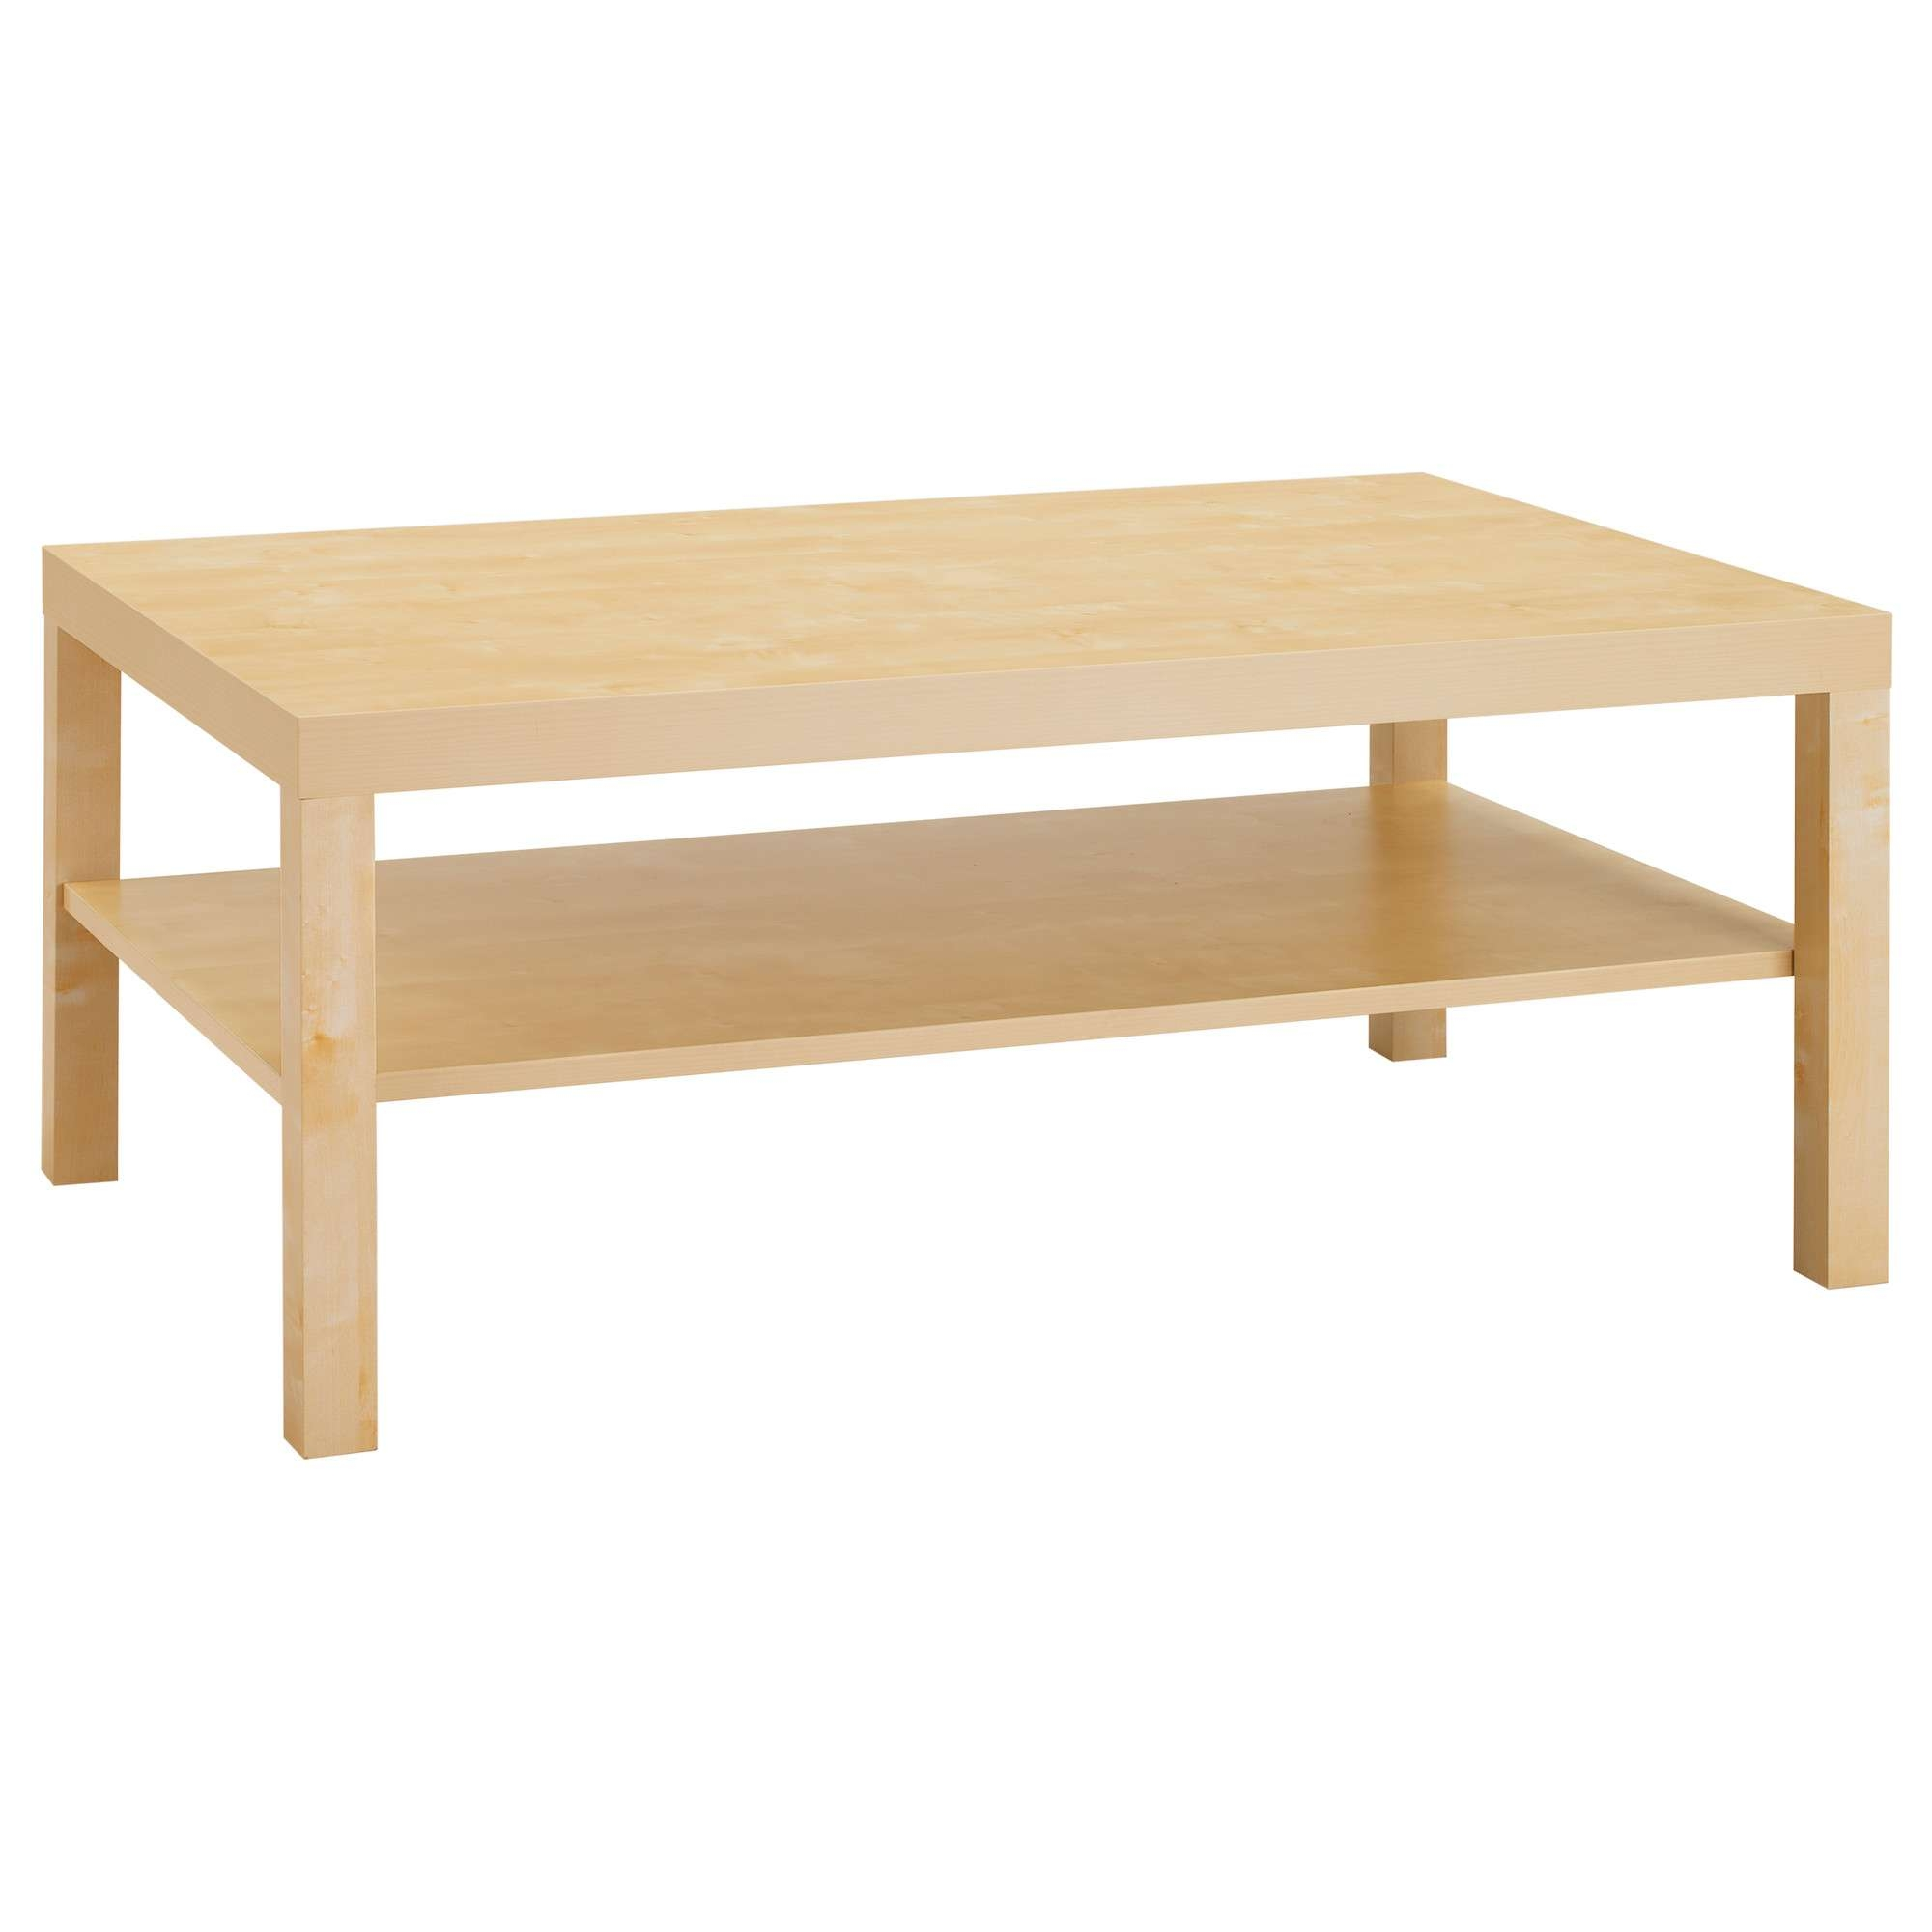 2017 Small Wood Coffee Tables For Lack Coffee Table – White – Ikea (View 1 of 20)